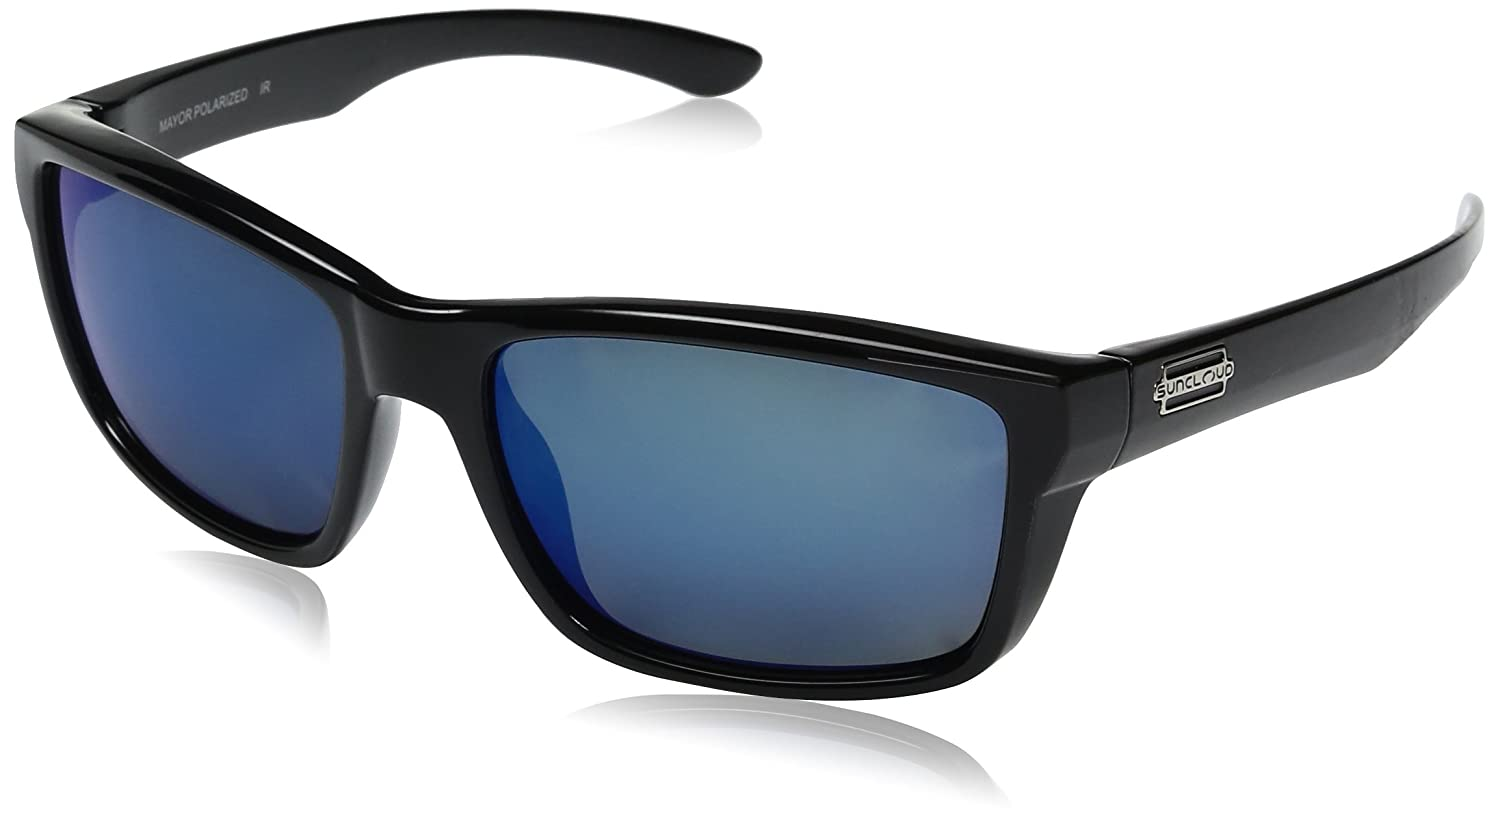 a9ae003d42a Amazon.com  Suncloud Mayor Polarized Sunglass with Polycarbonate Lens